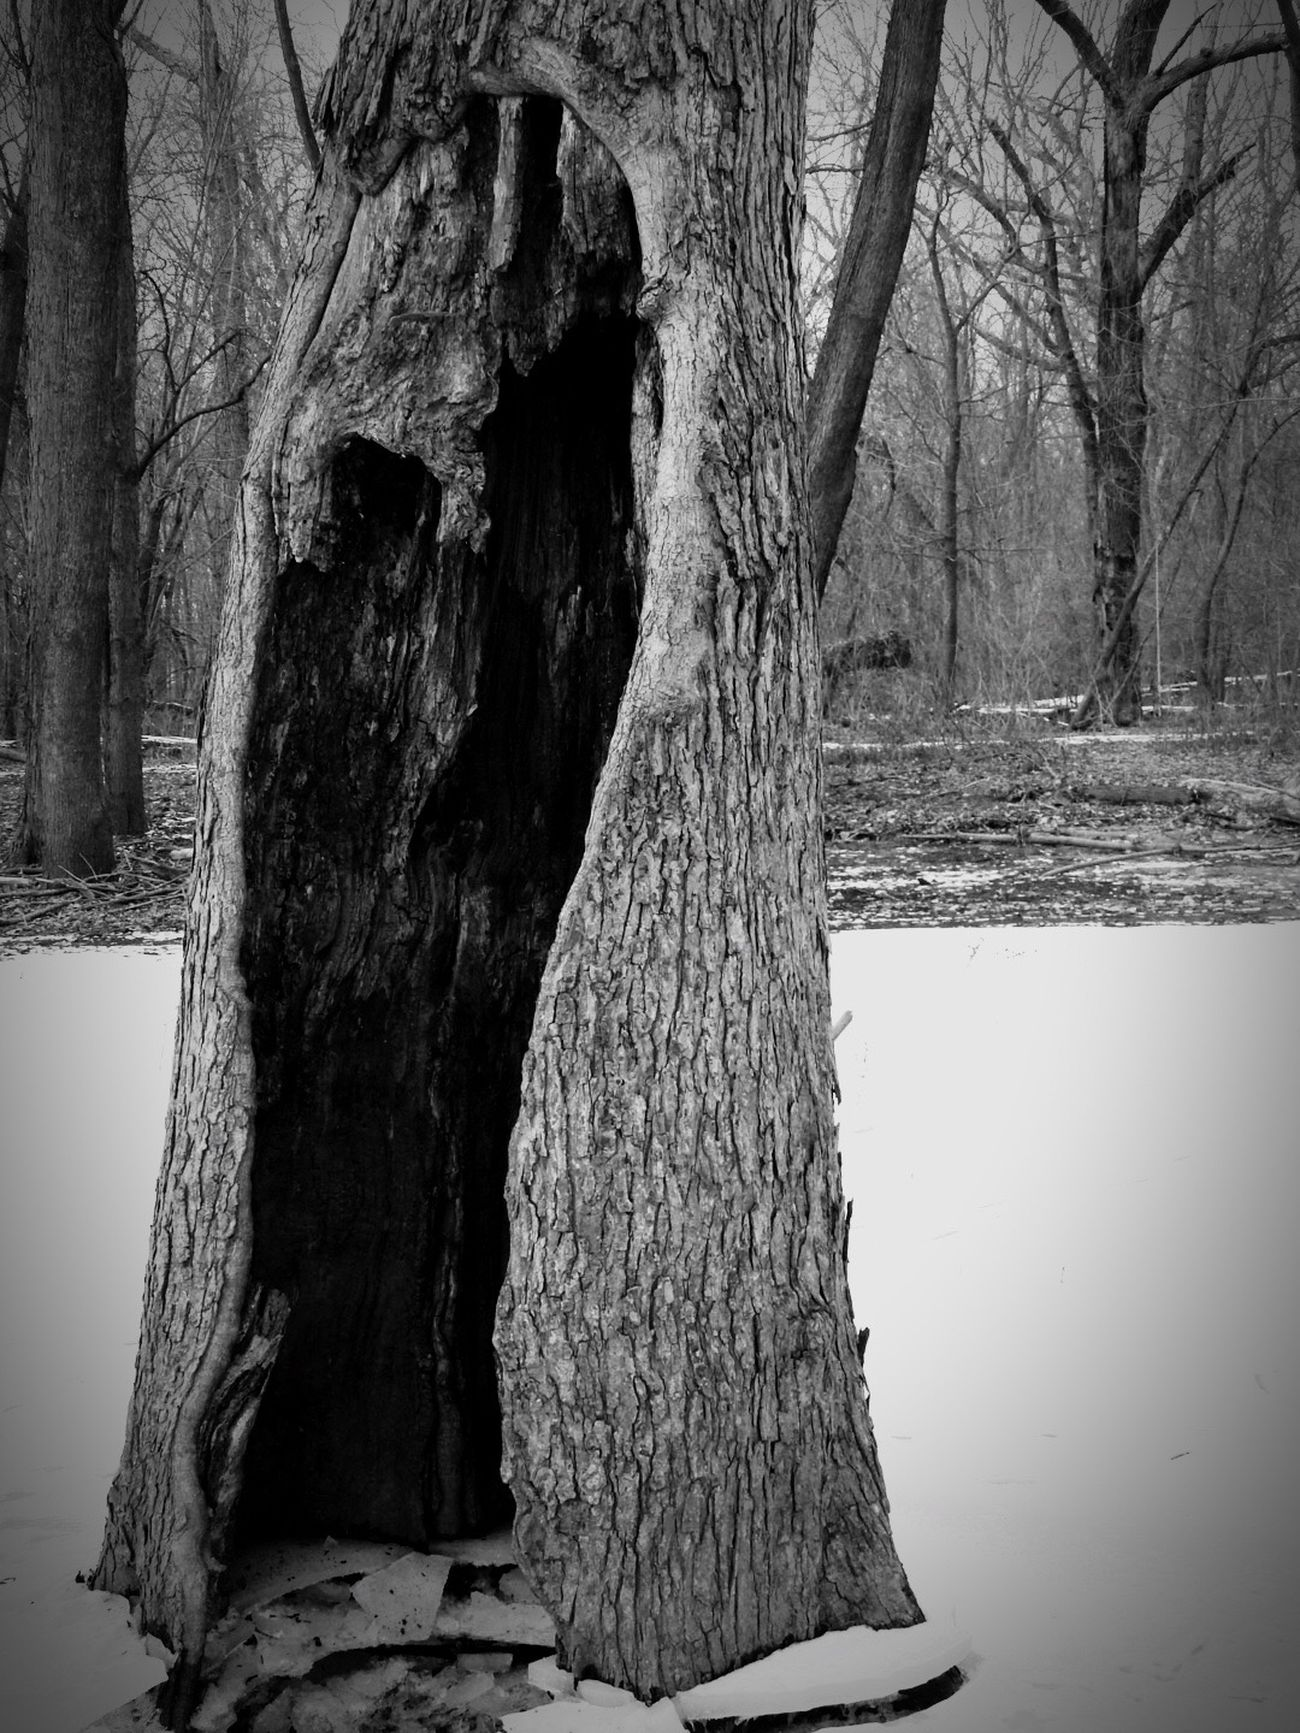 Taking Photos Black & White Blackandwhite Tree Trunk